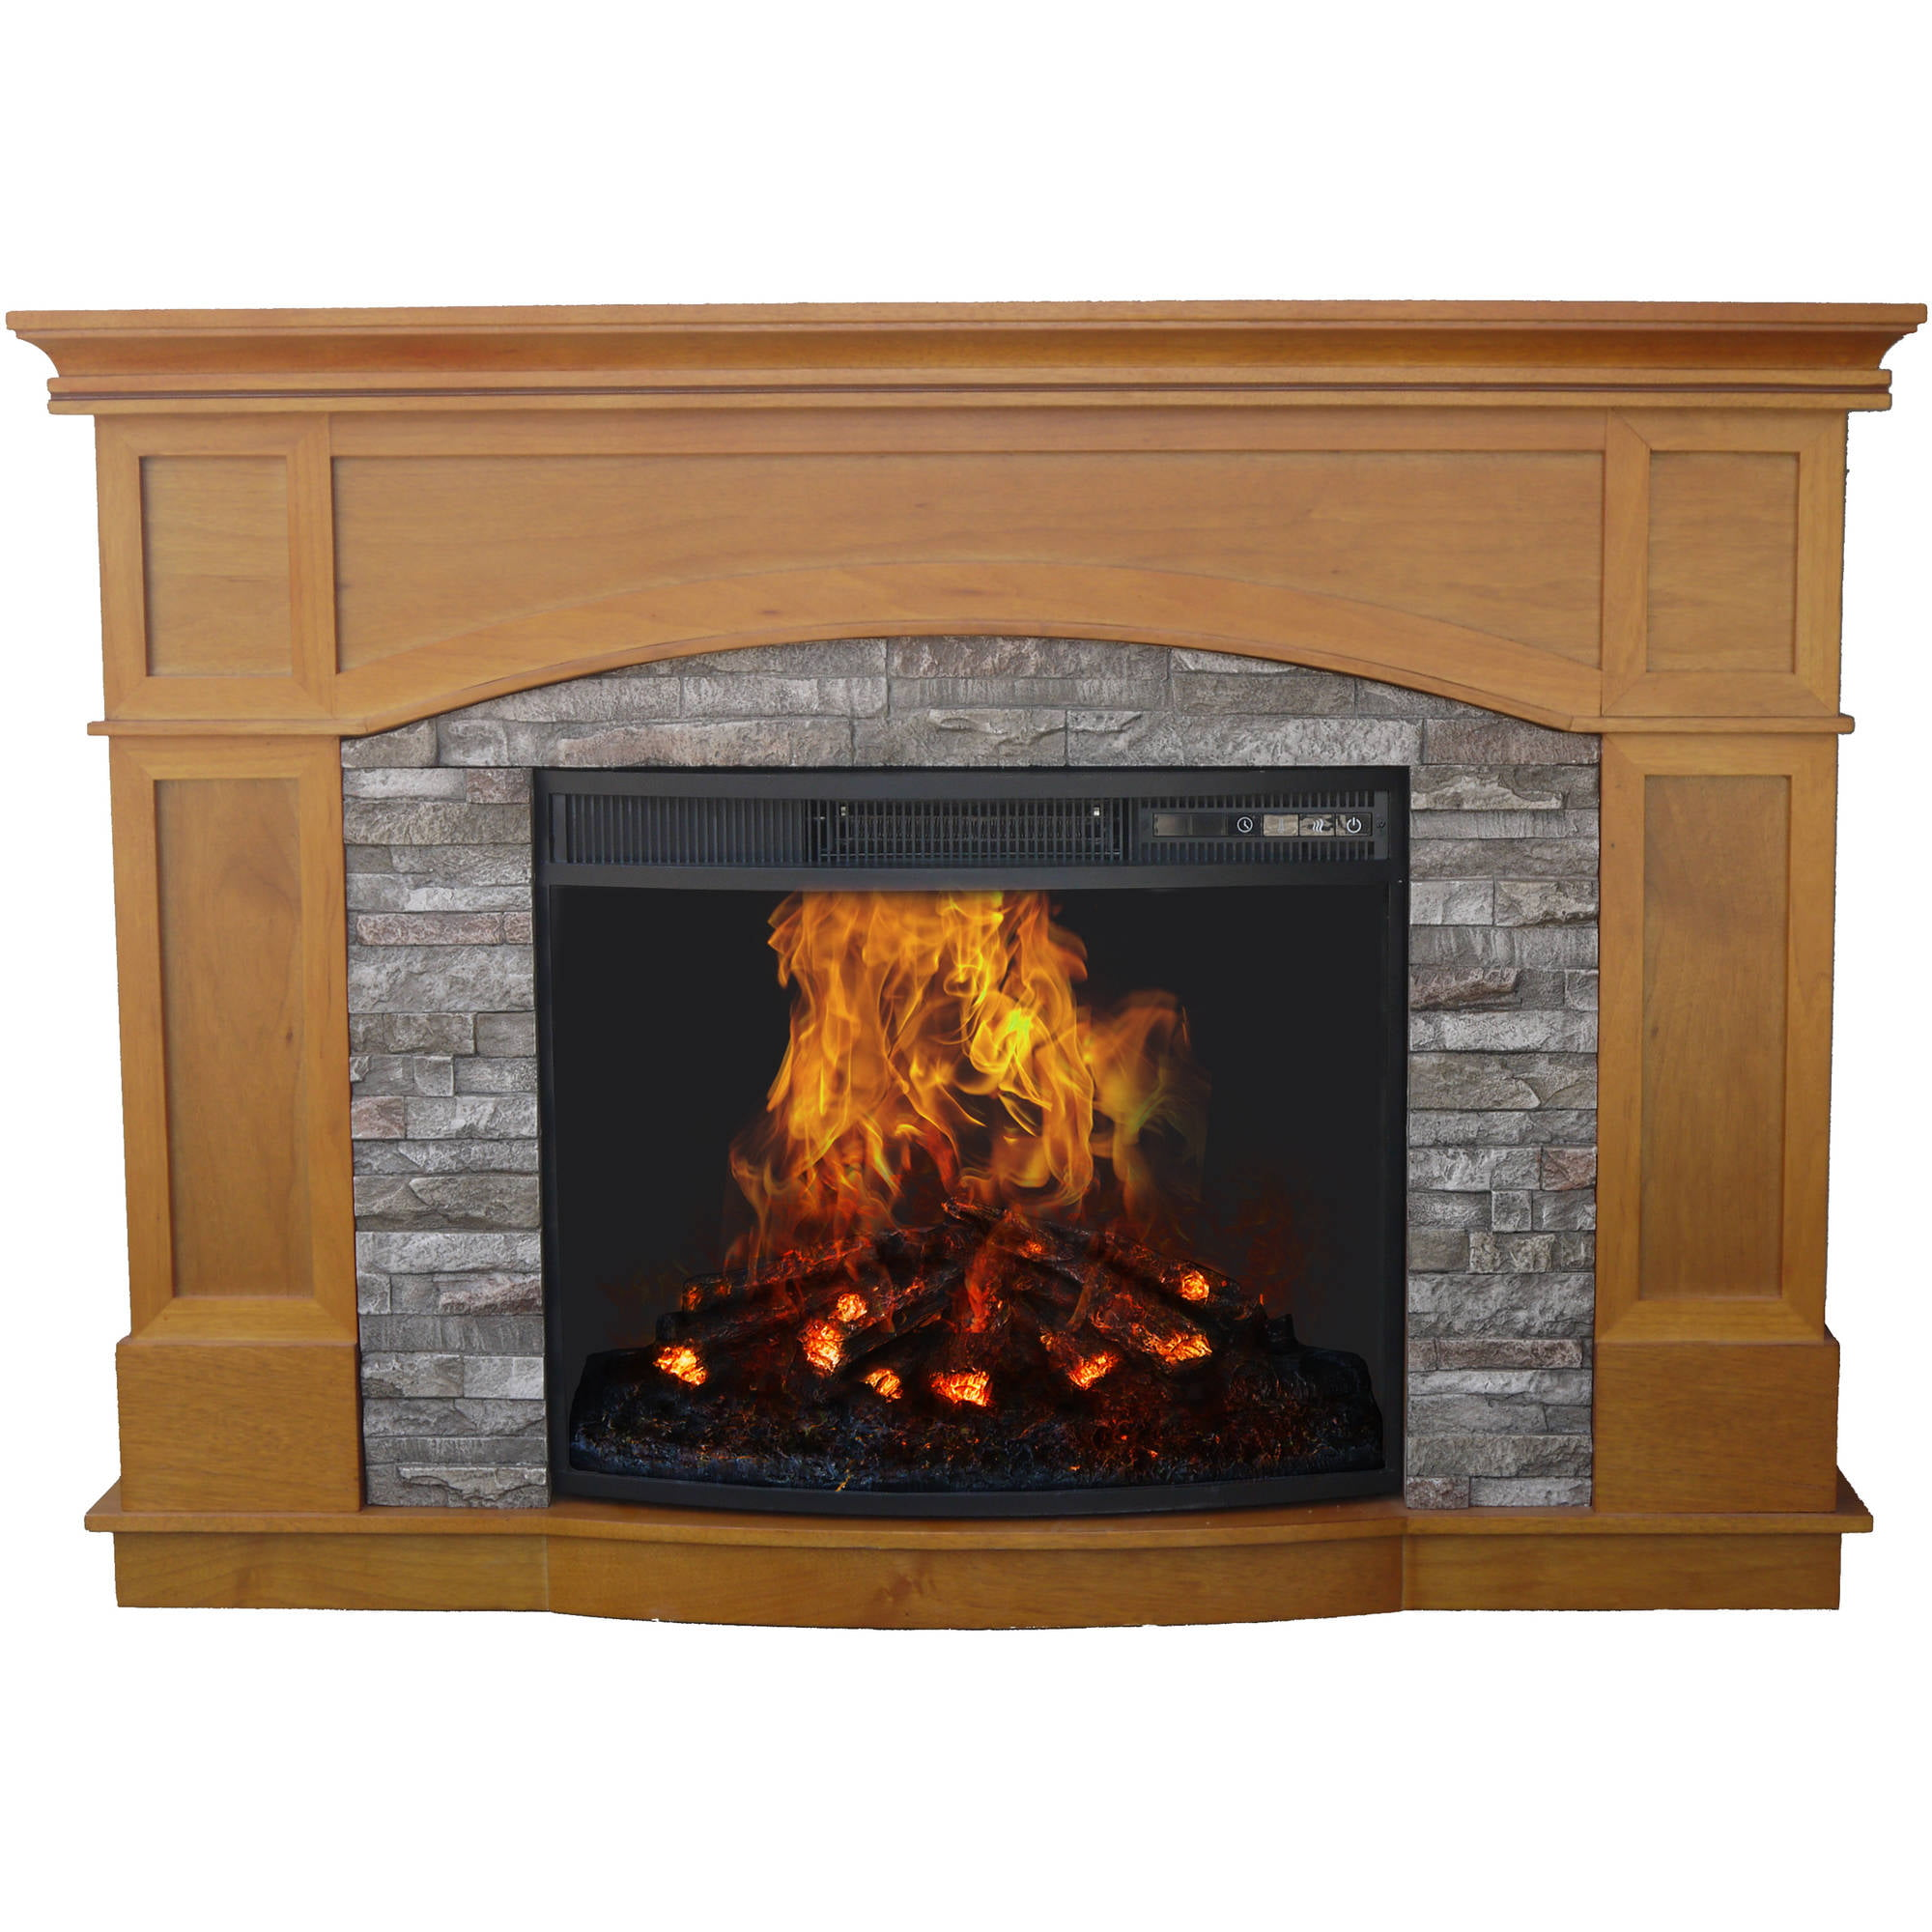 lots collections electric on fireplace place new white whitewash sale media big ideas fireplaces